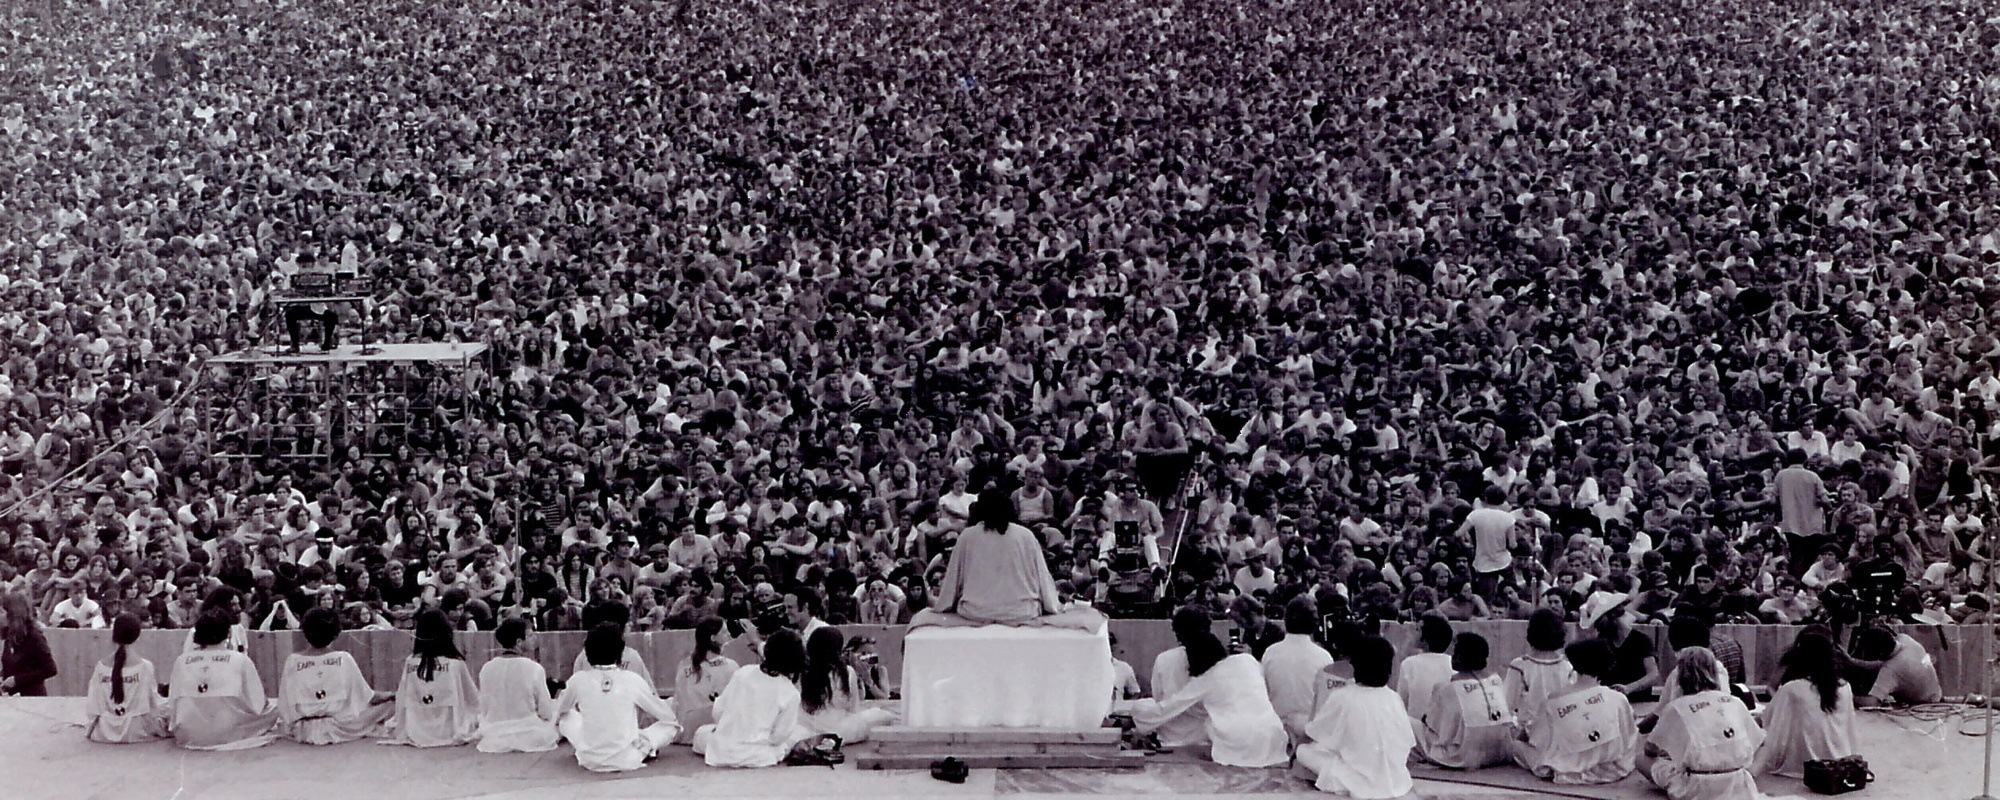 Woodstock Music Festival Opening Ceremony